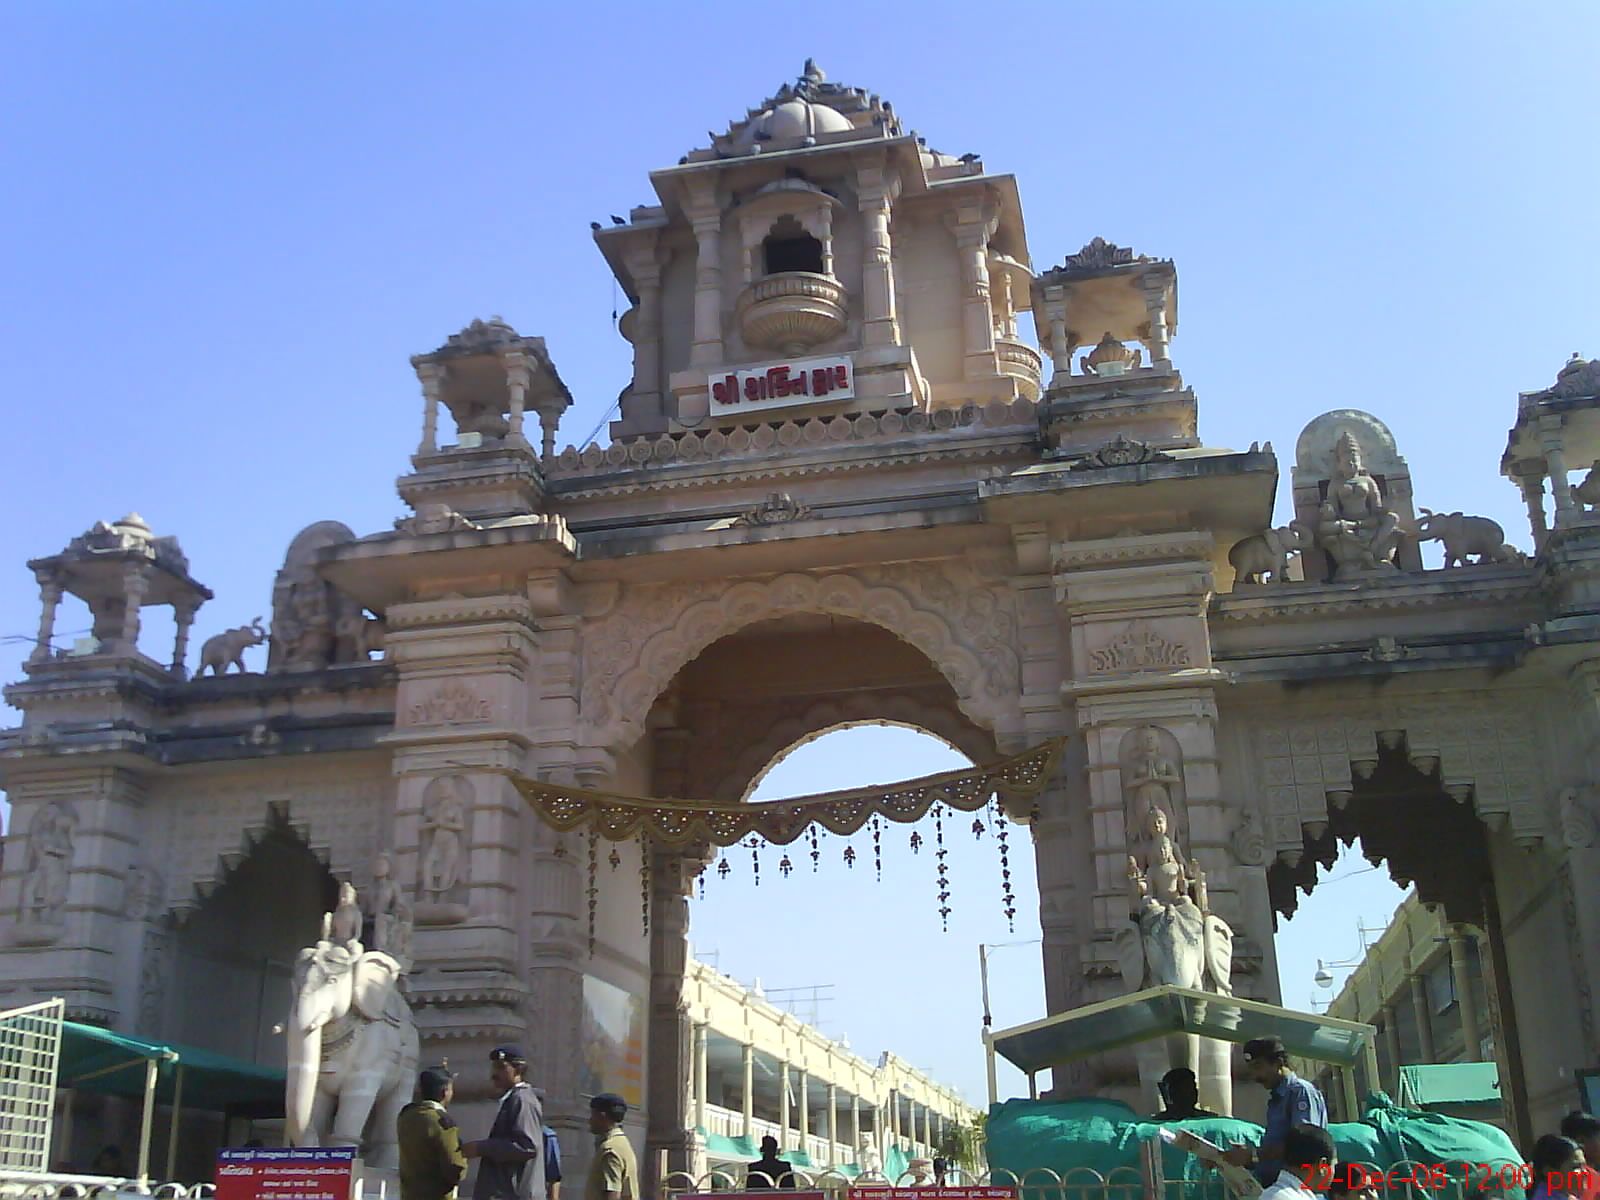 Entrance to Ambaji Temple Picture of the Day 1600x1200